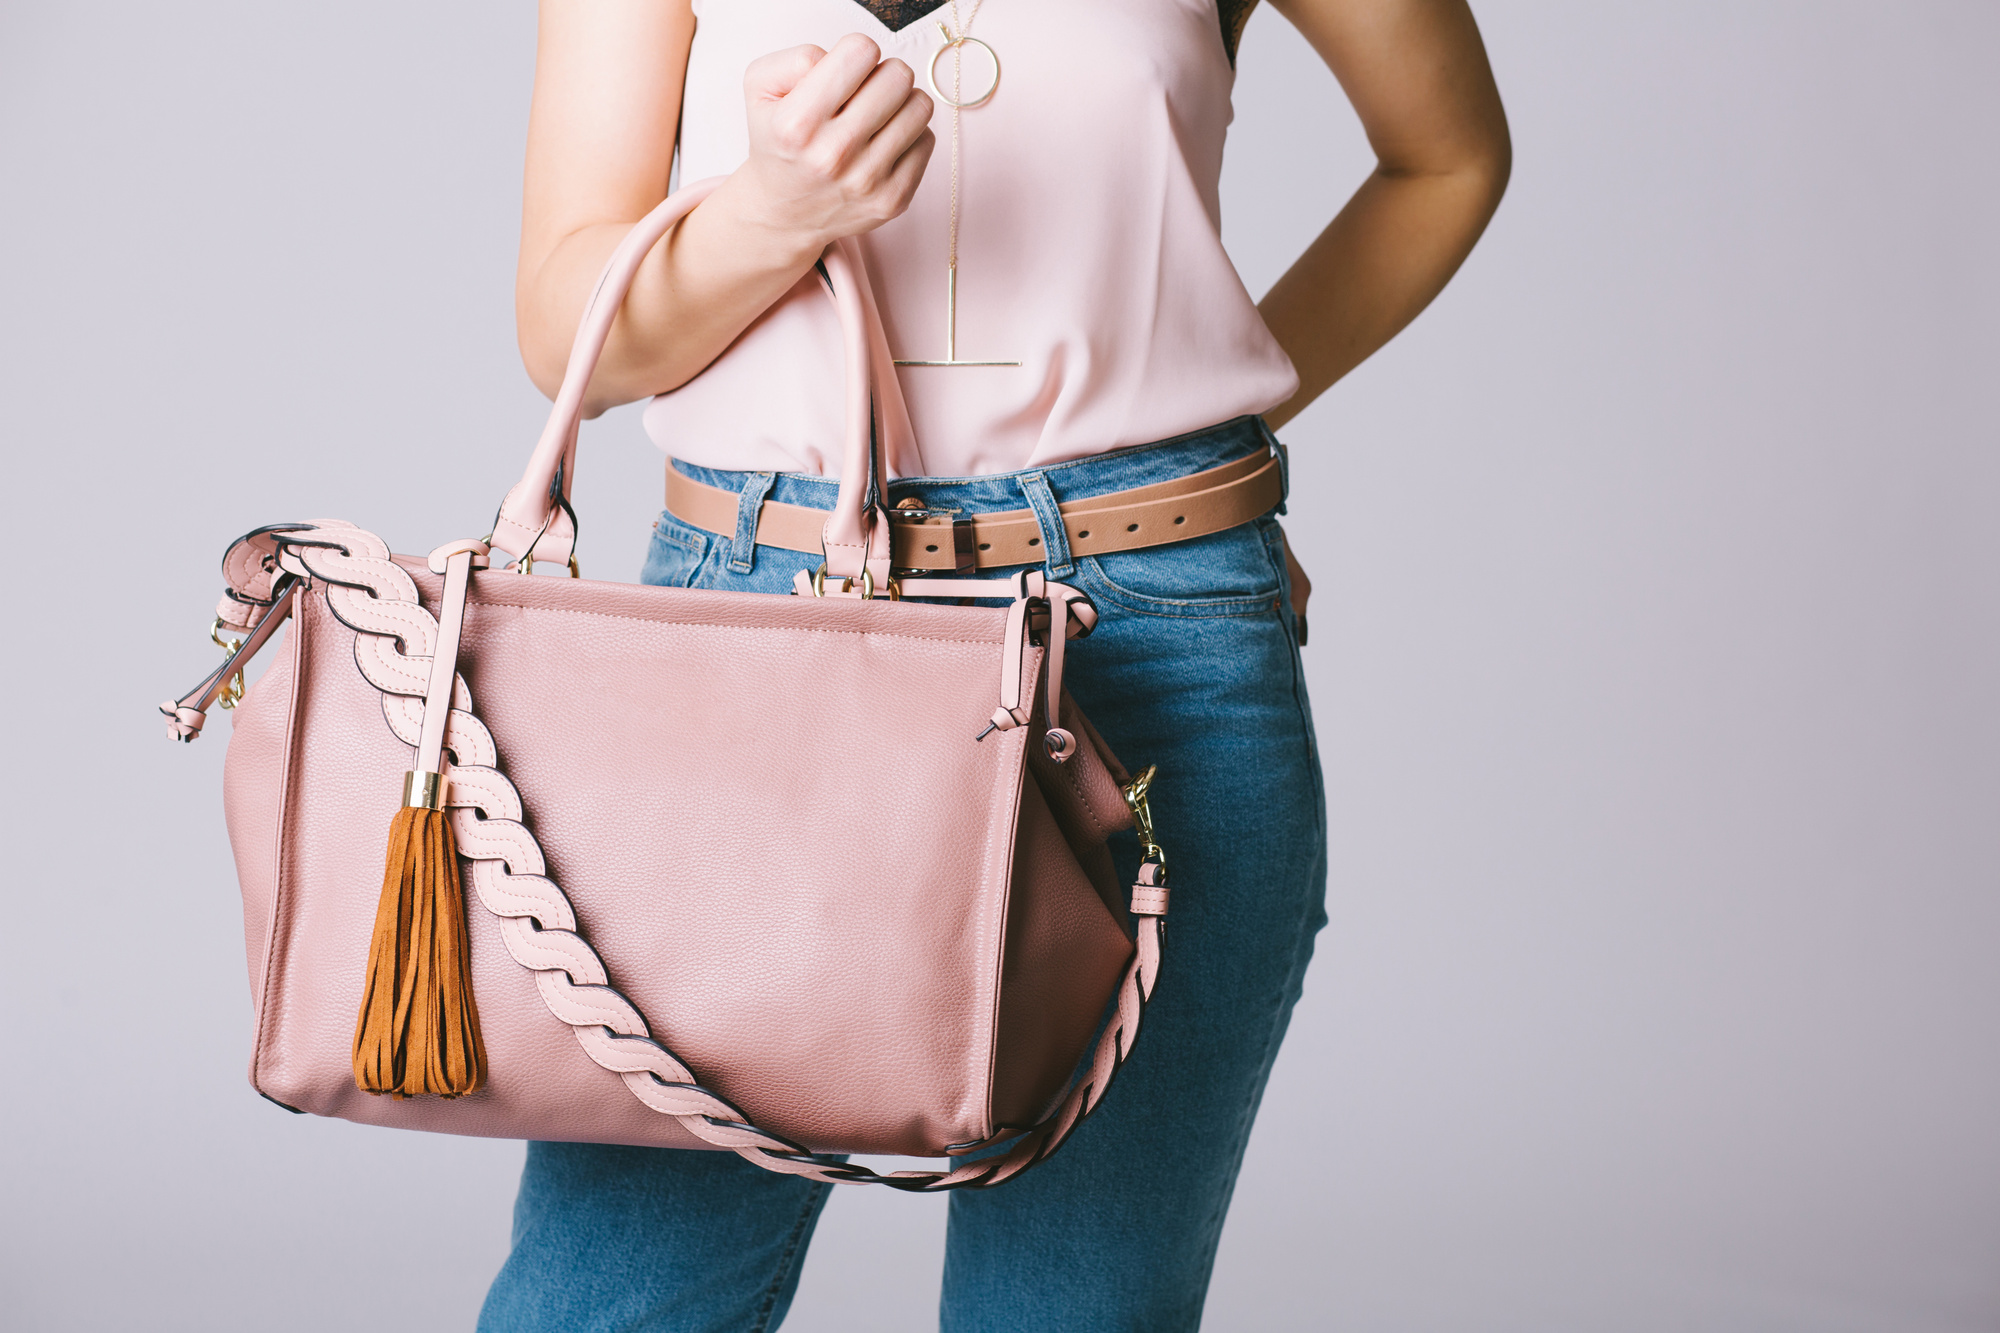 Carry Yourself in Style: 9 New Purse Trends You Need for 2019